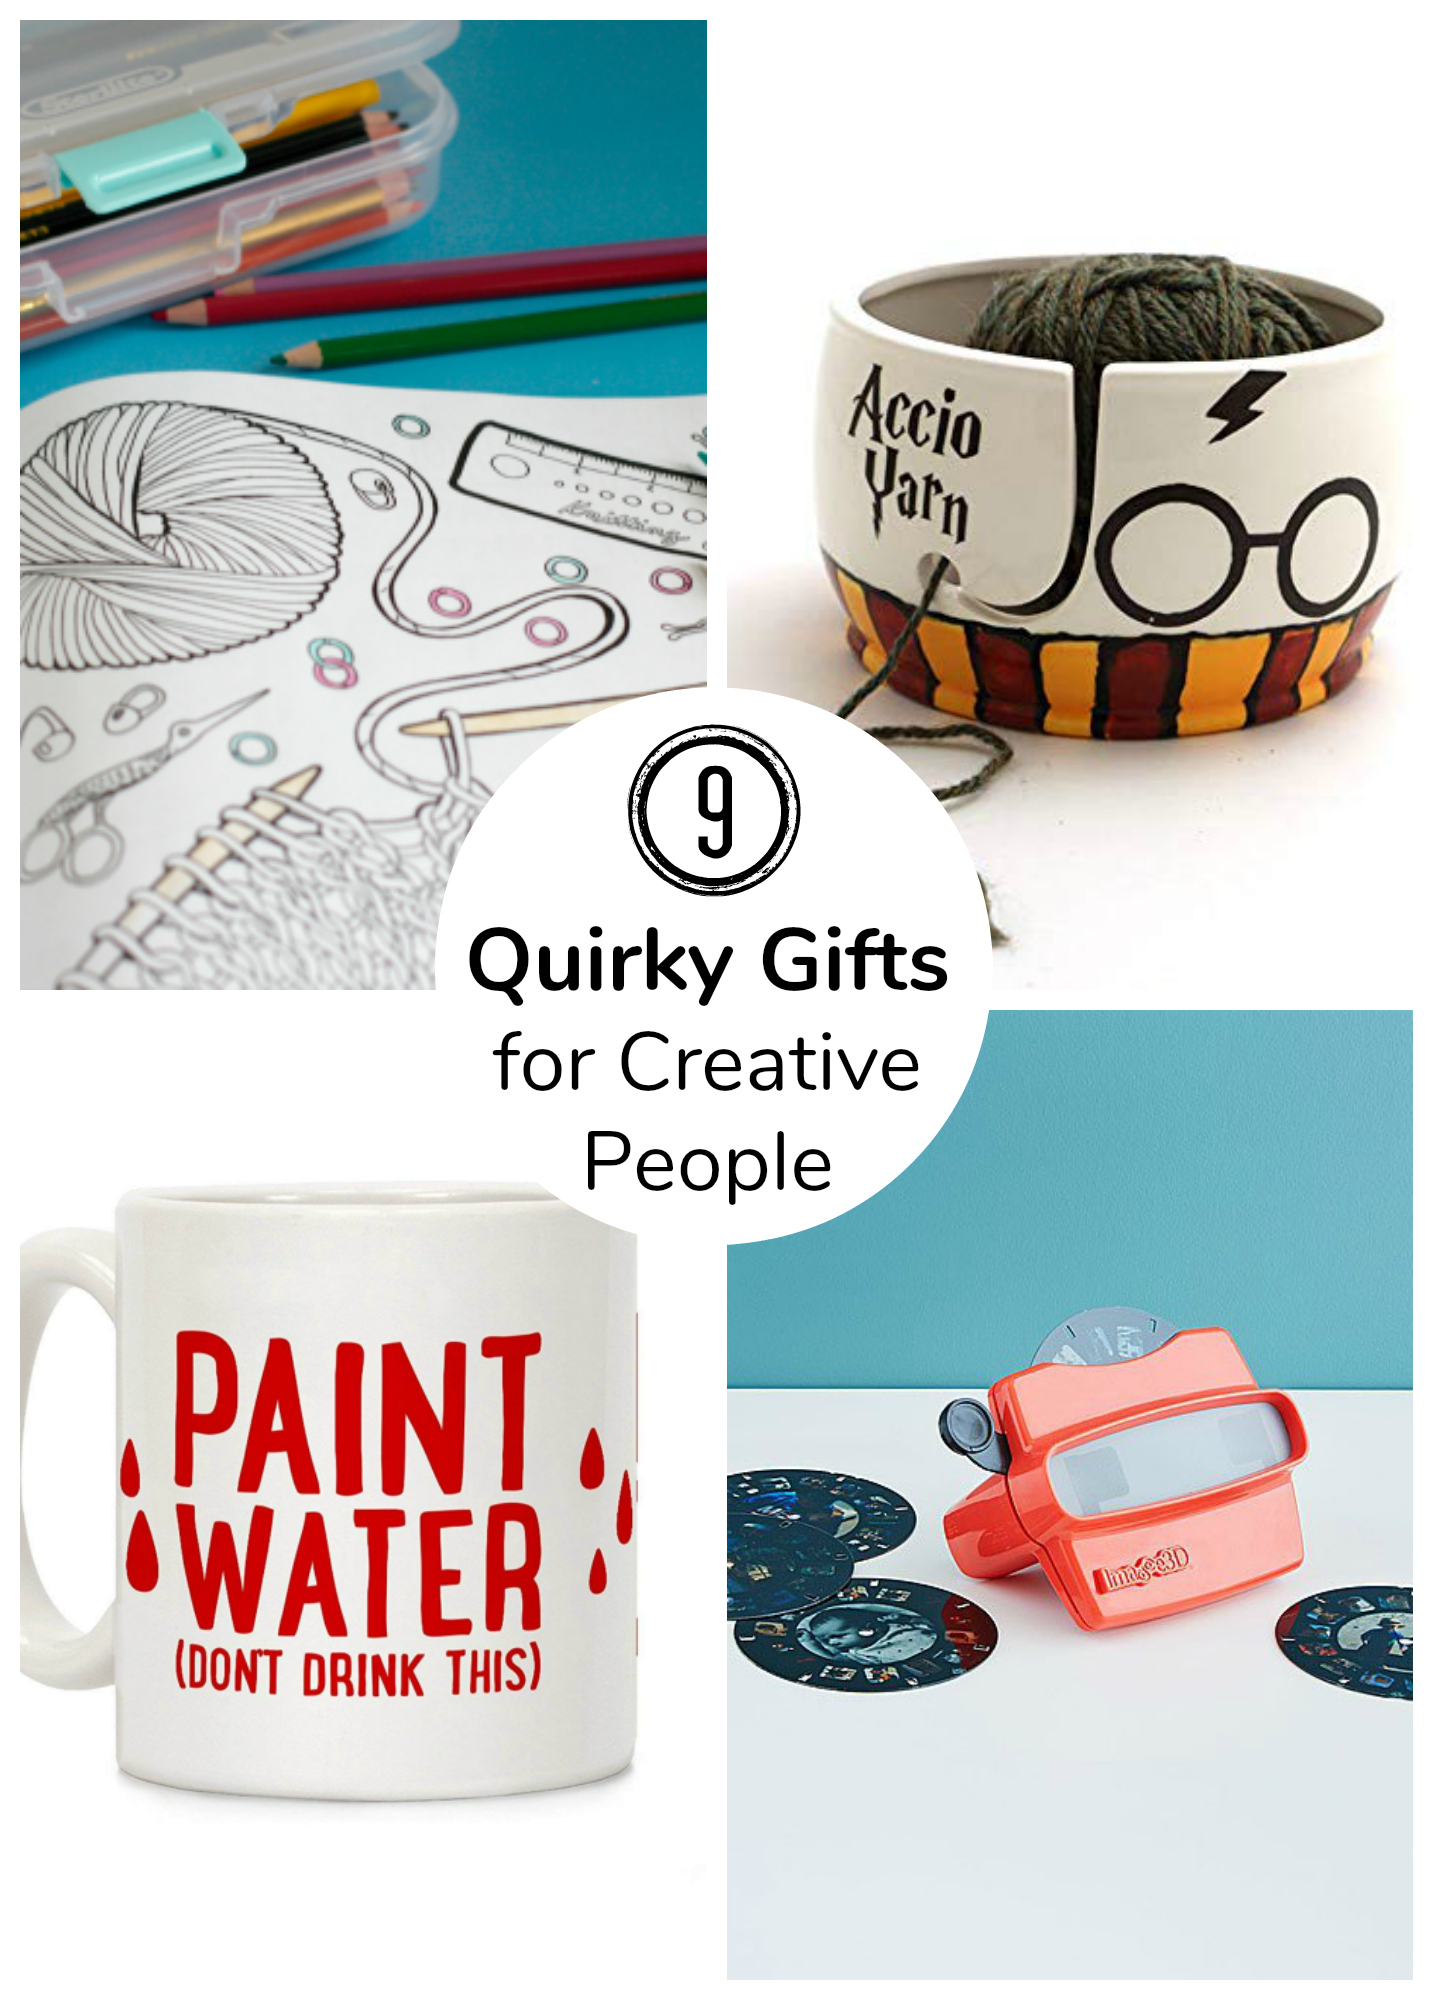 9 Quirky Gifts for Creative People